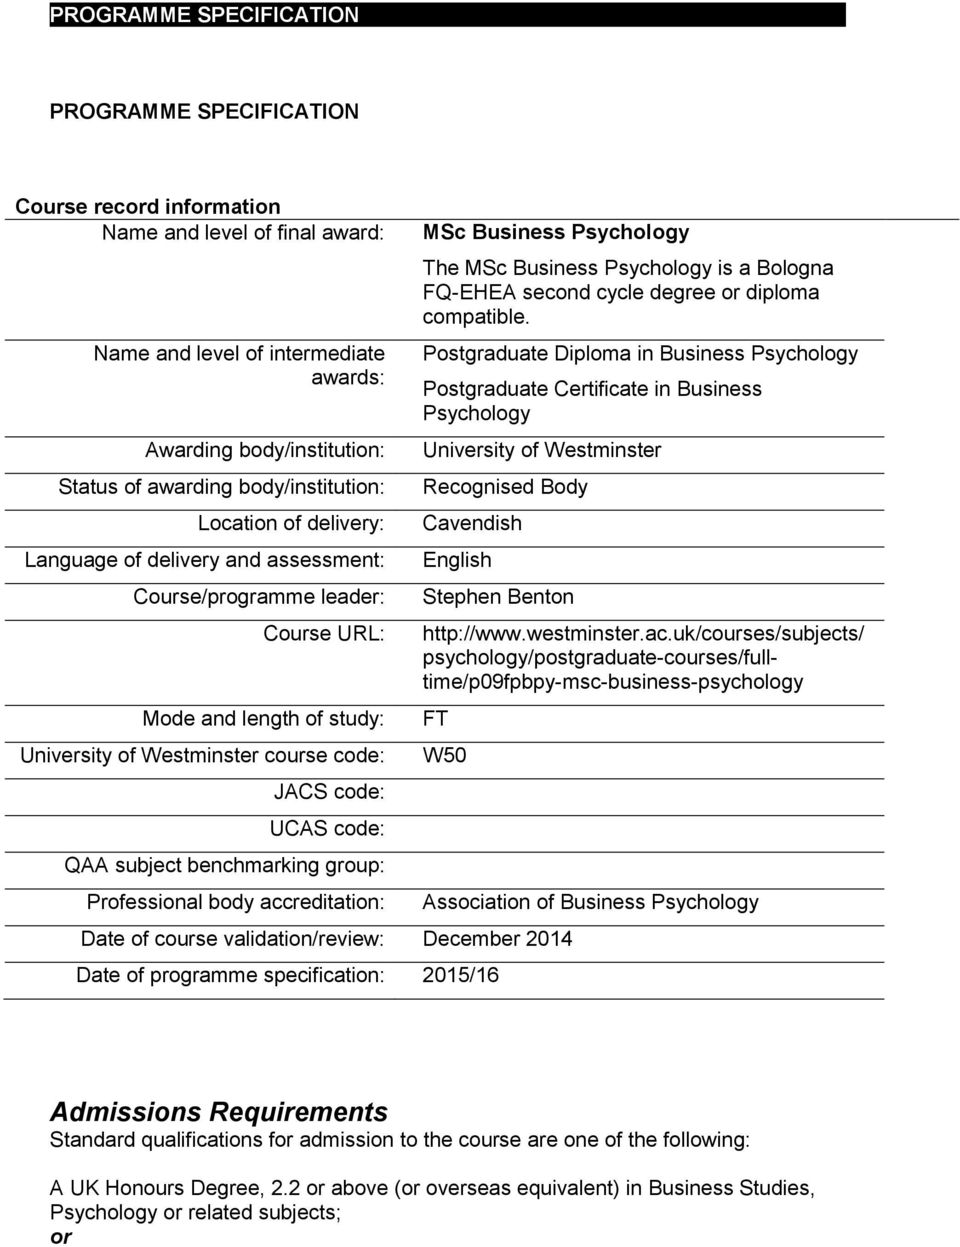 code: QAA subject benchmarking group: Professional body accreditation: MSc Business Psychology The MSc Business Psychology is a Bologna FQ-EHEA second cycle degree or diploma compatible.